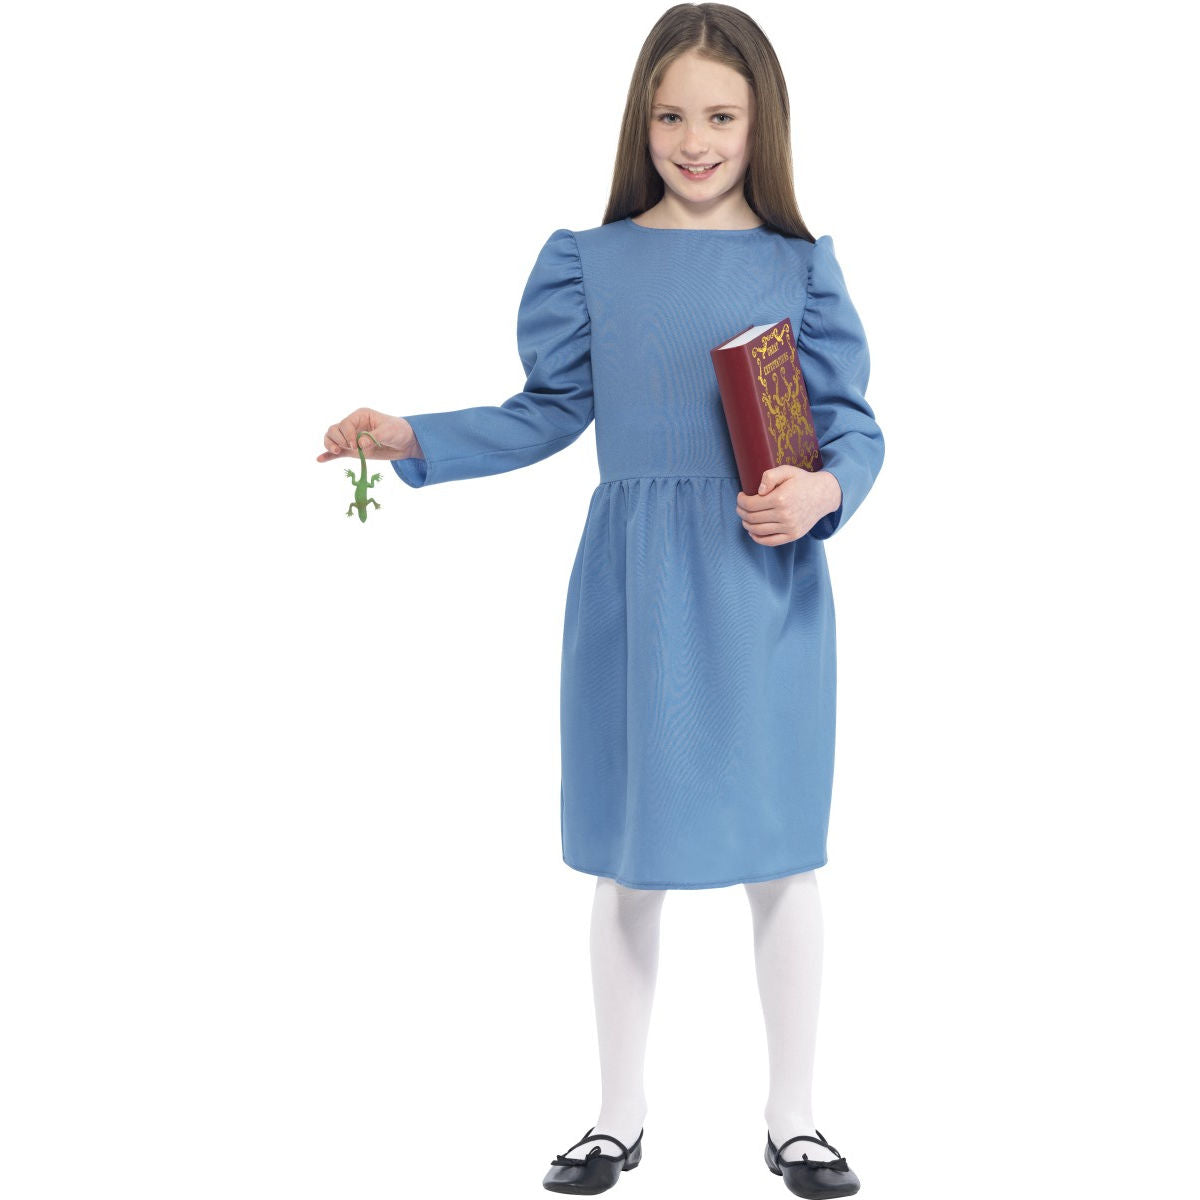 Roald Dahl Matilda Girls Book Week Costume with Newt & Book